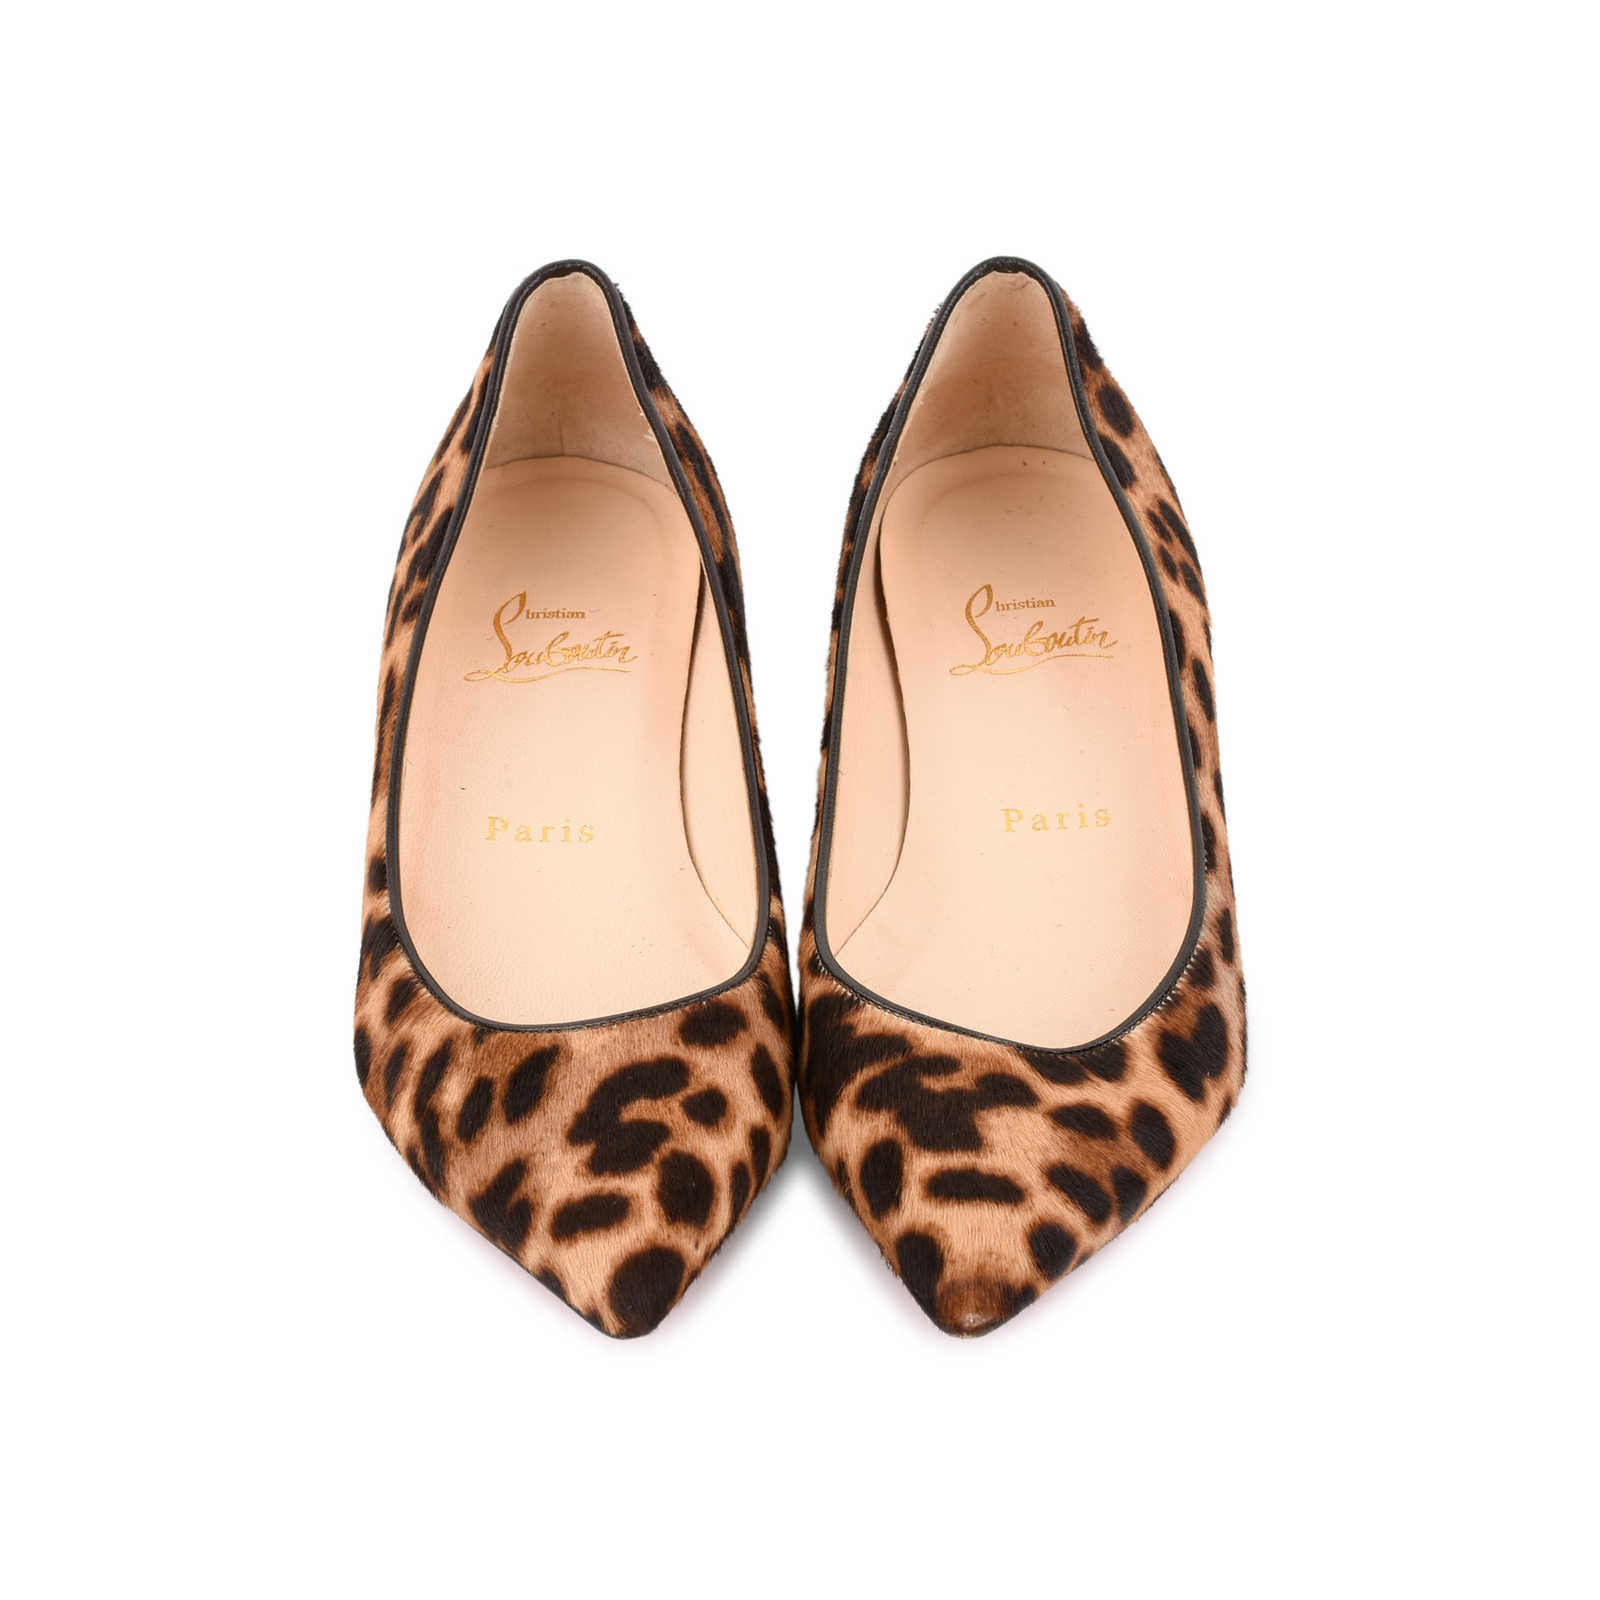 official photos 50b05 a3360 Authentic Second Hand Christian Louboutin Leopard Pigalle ...